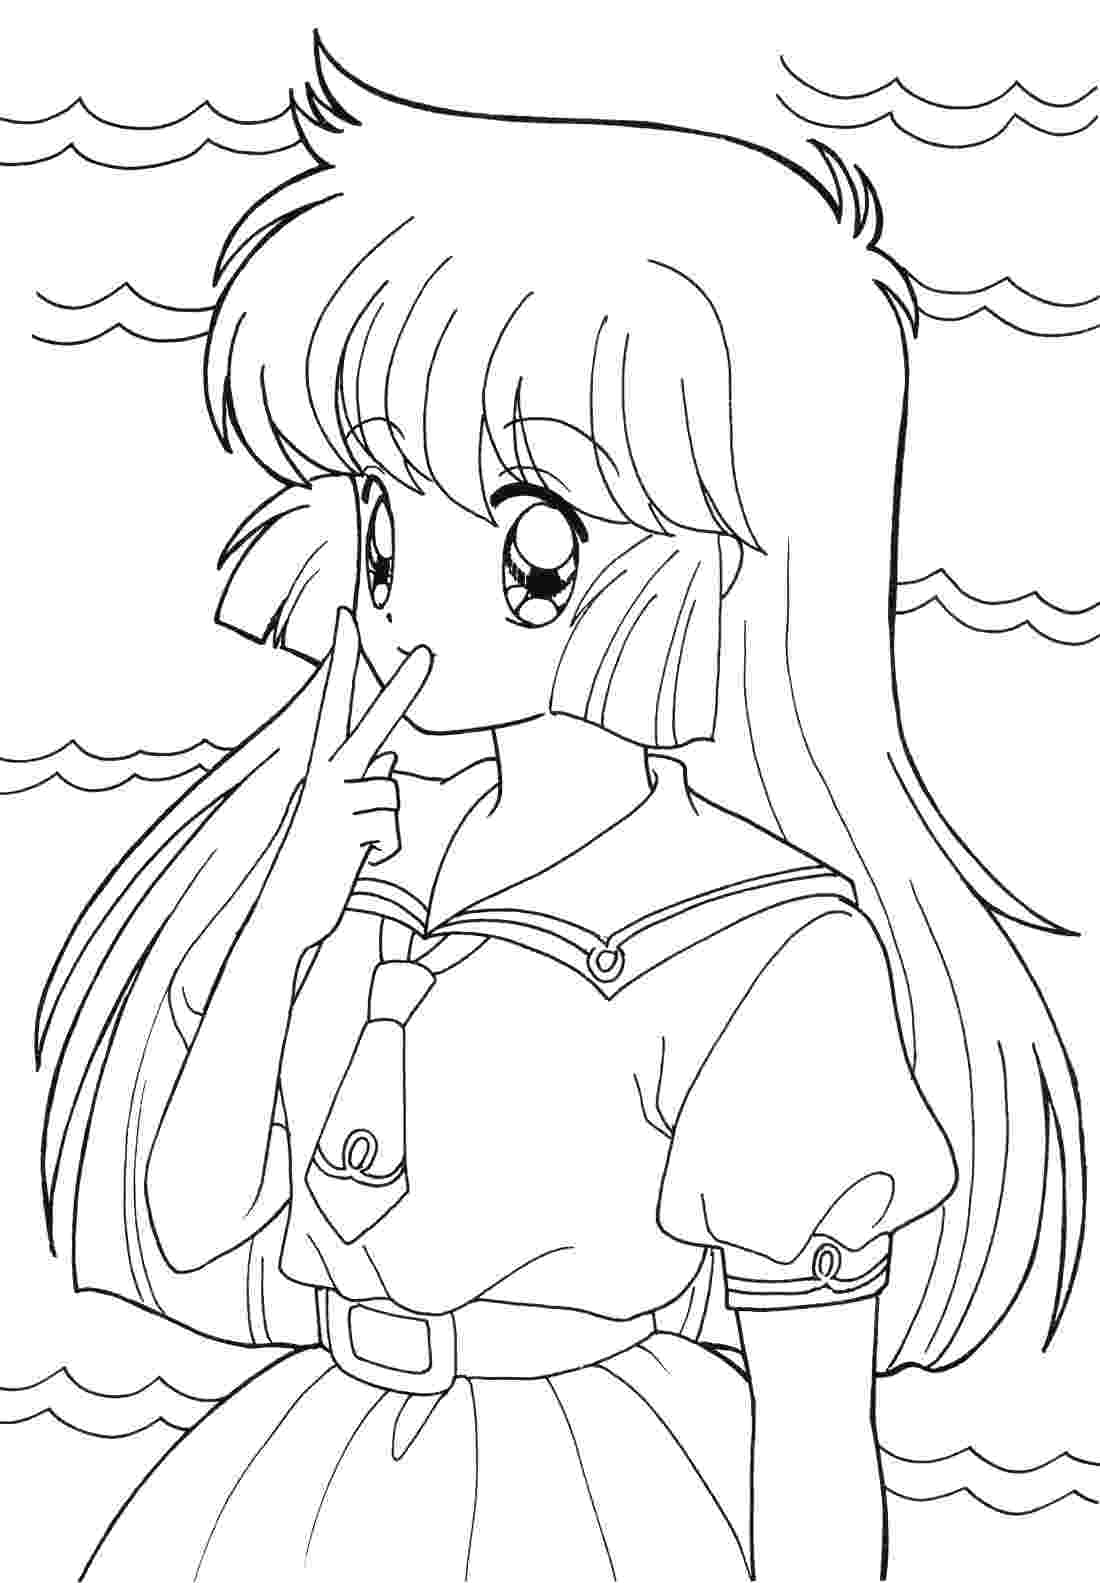 anime coloring pages printable anime coloring pages best coloring pages for kids printable anime coloring pages